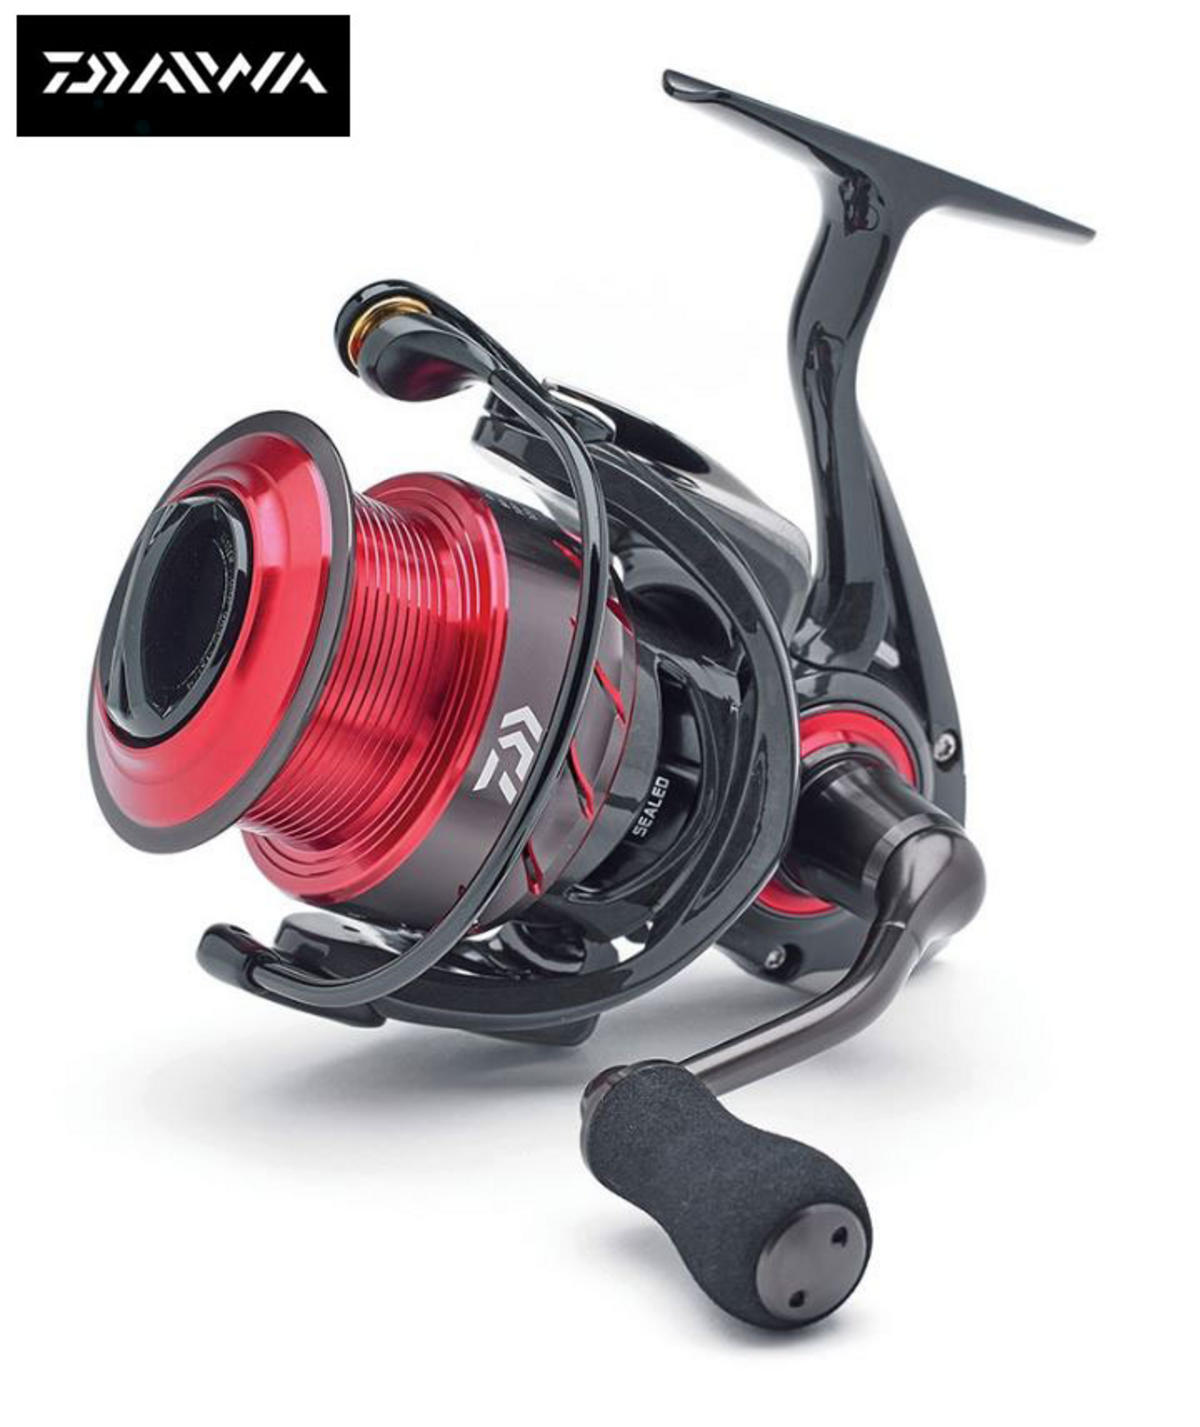 New Daiwa 16 TDX Match QDA Fishing Reels - All Models